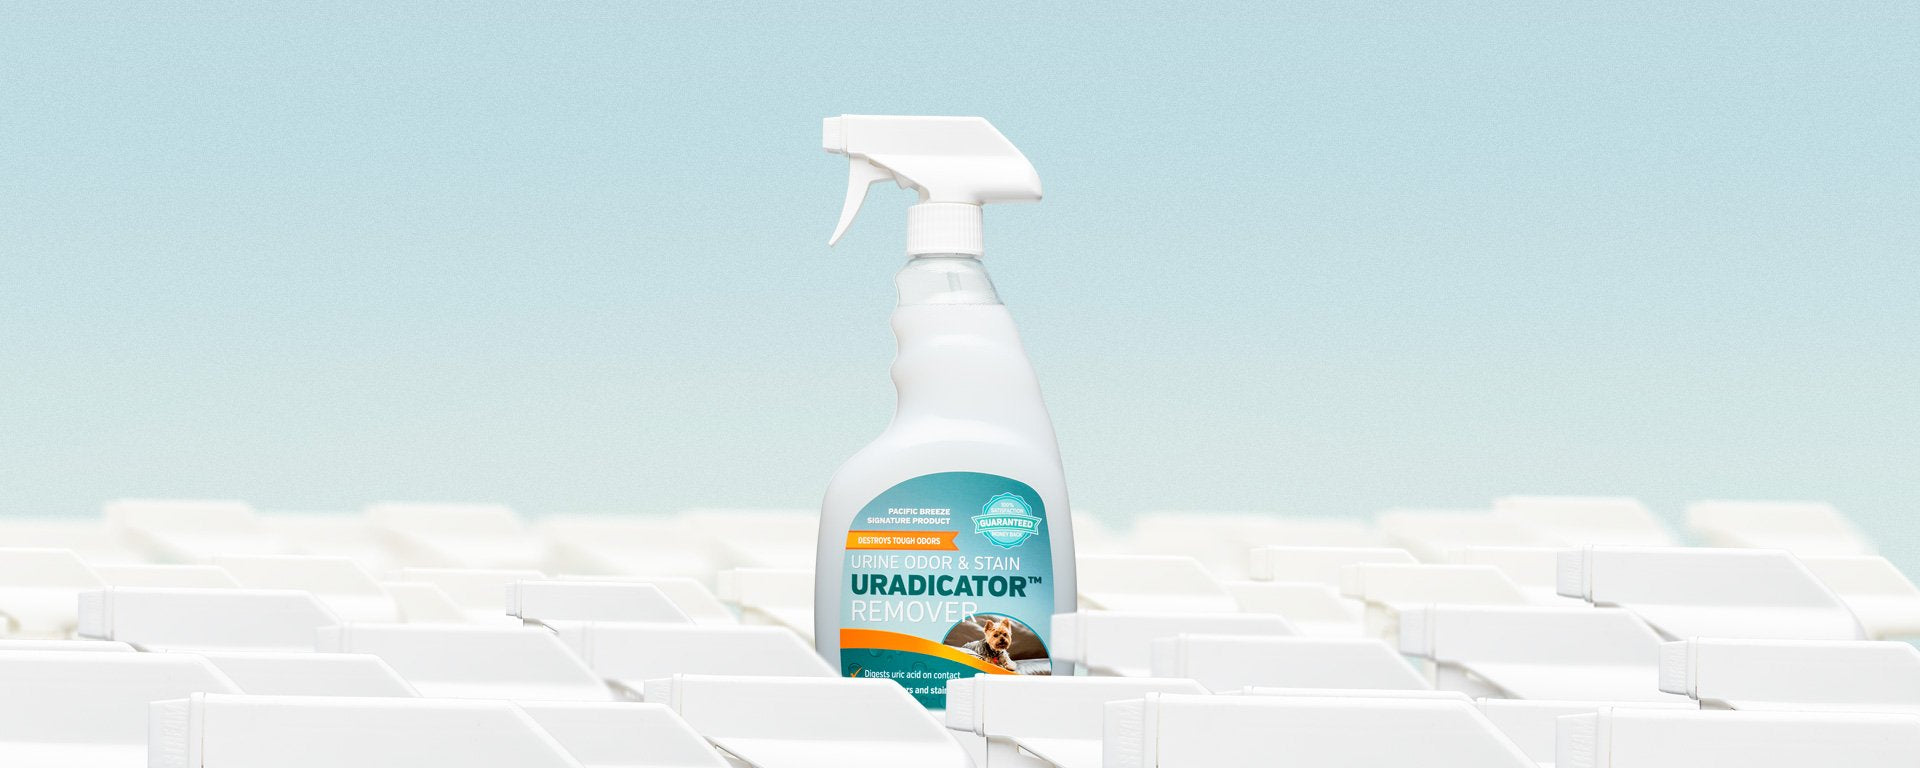 http://www.pacificbreezenw.com/collections/pacific-breeze-products/products/dumpster-control-granules-with-citronella